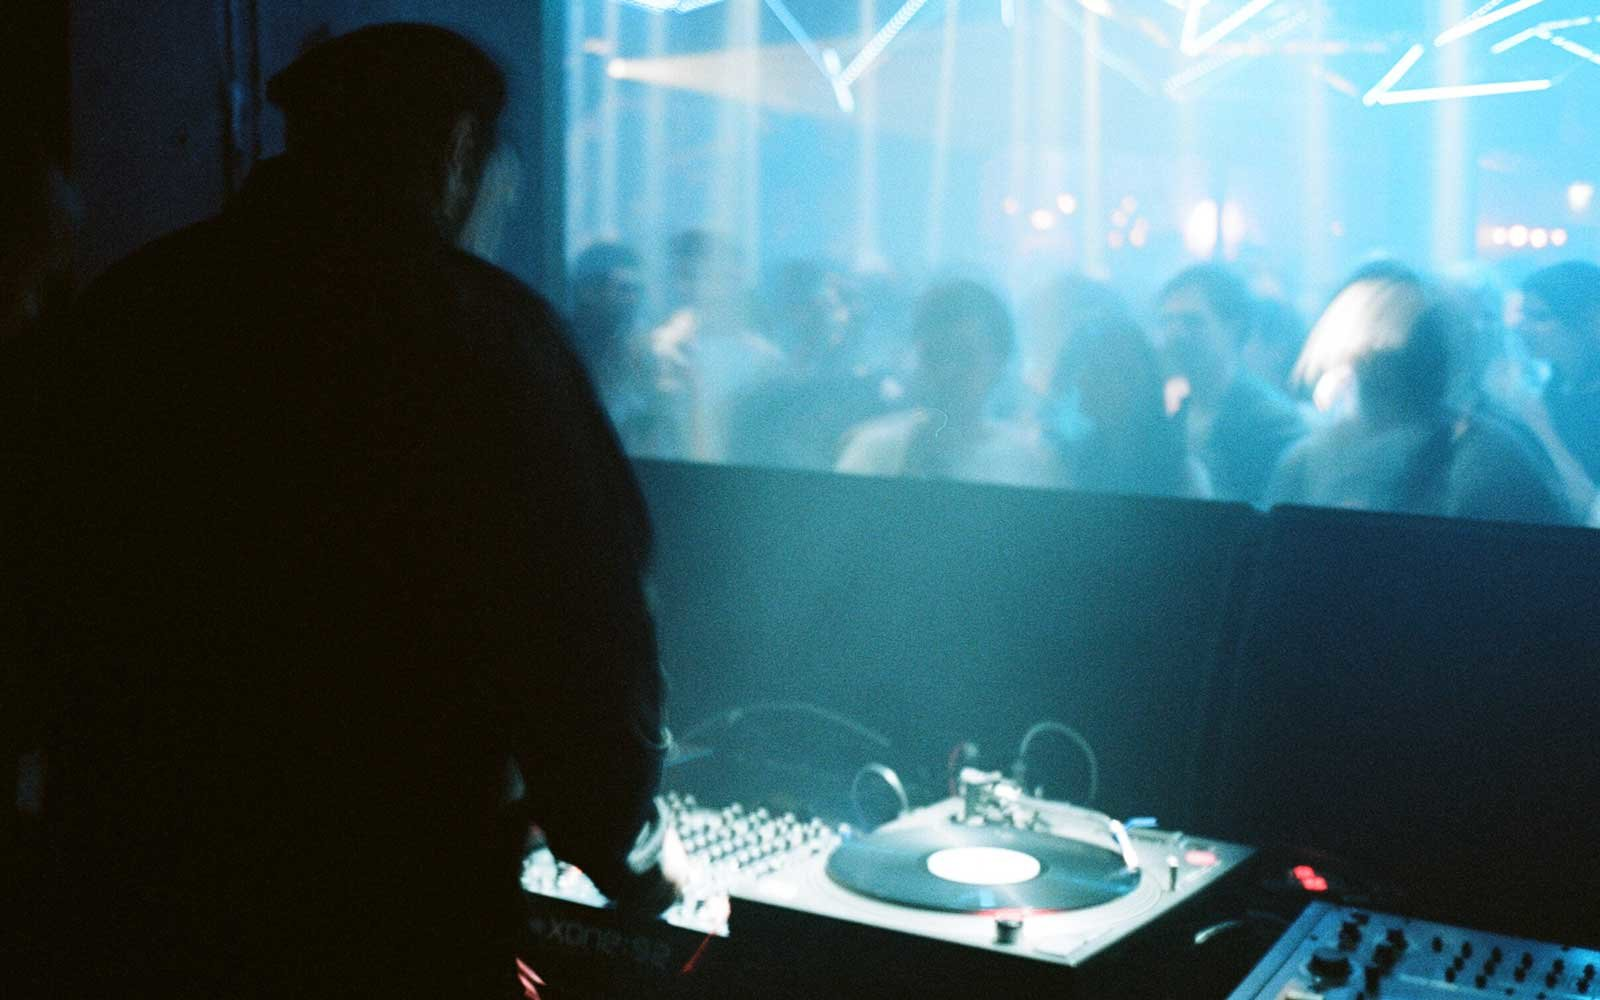 DJ booth at Grelle Forelle nightclub in Vienna, Austria